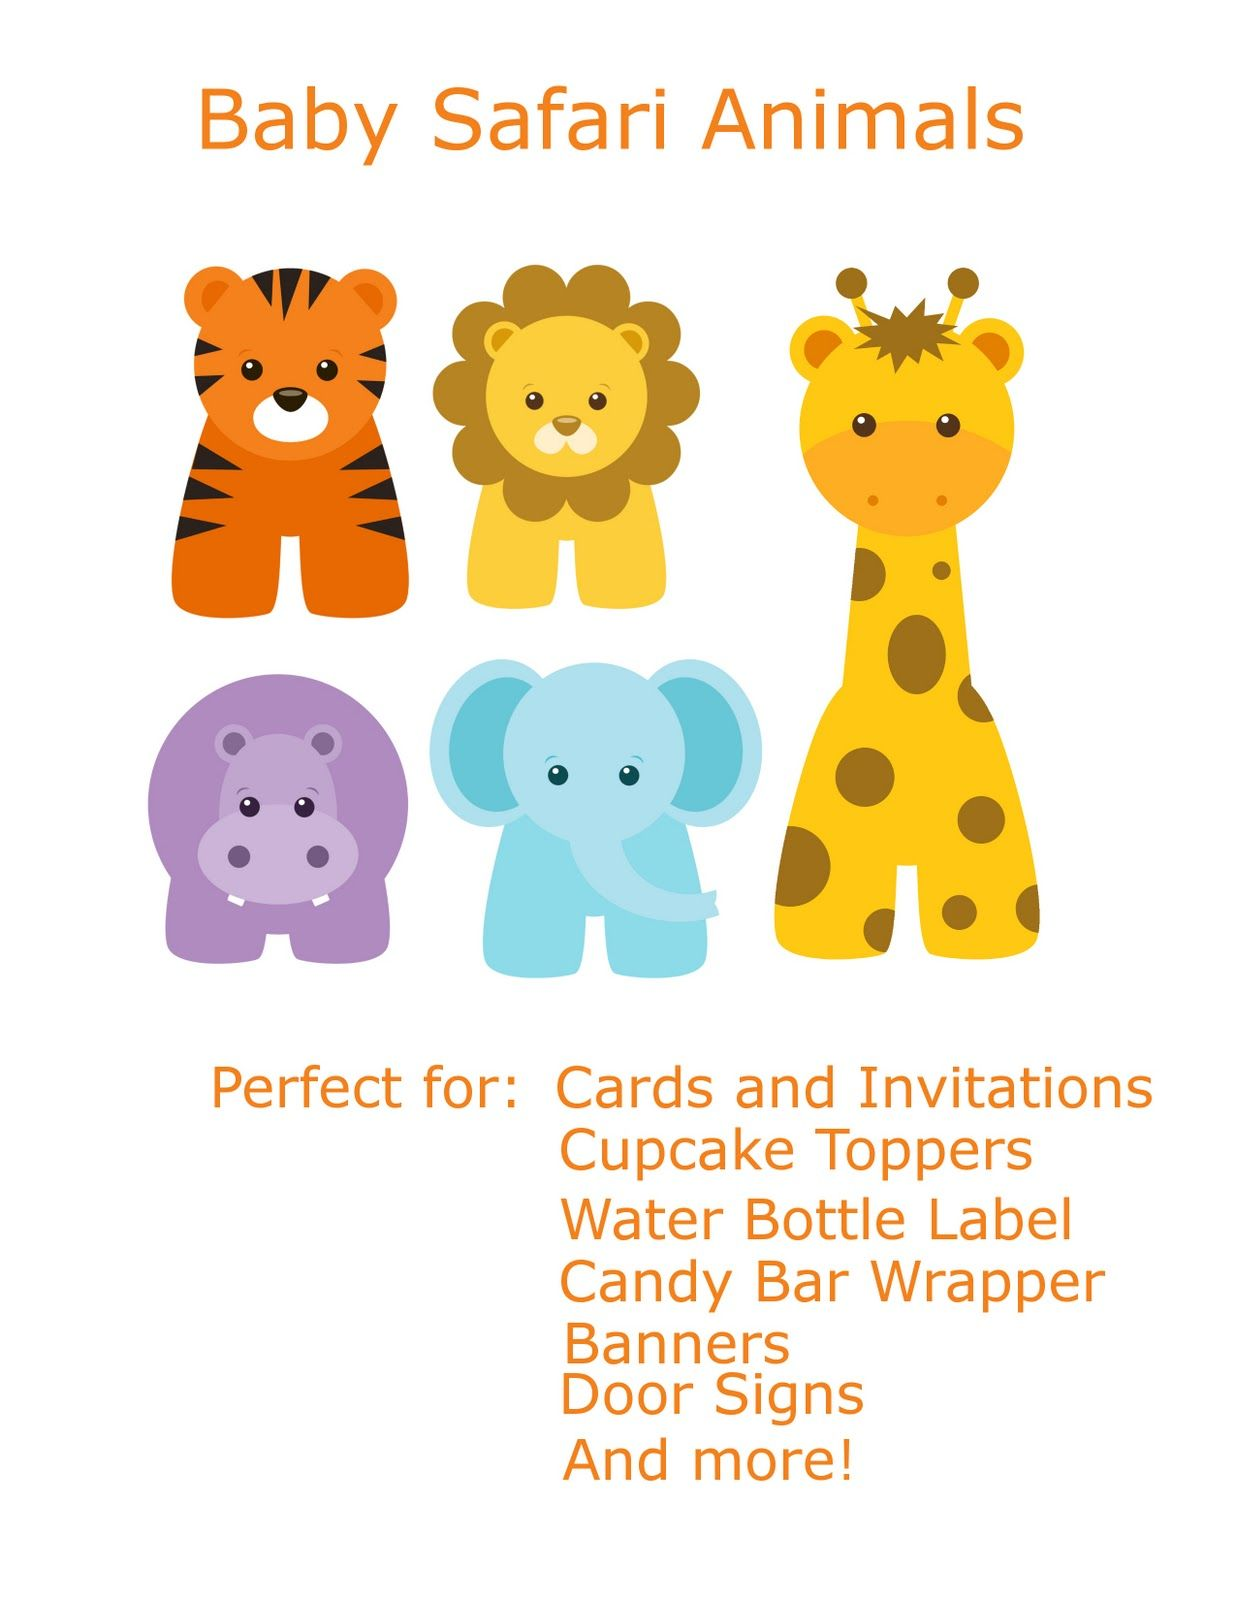 Free Baby Animal Clip Art  Paper Parties Baby Safari Clip Art  crafts  Free baby stuff